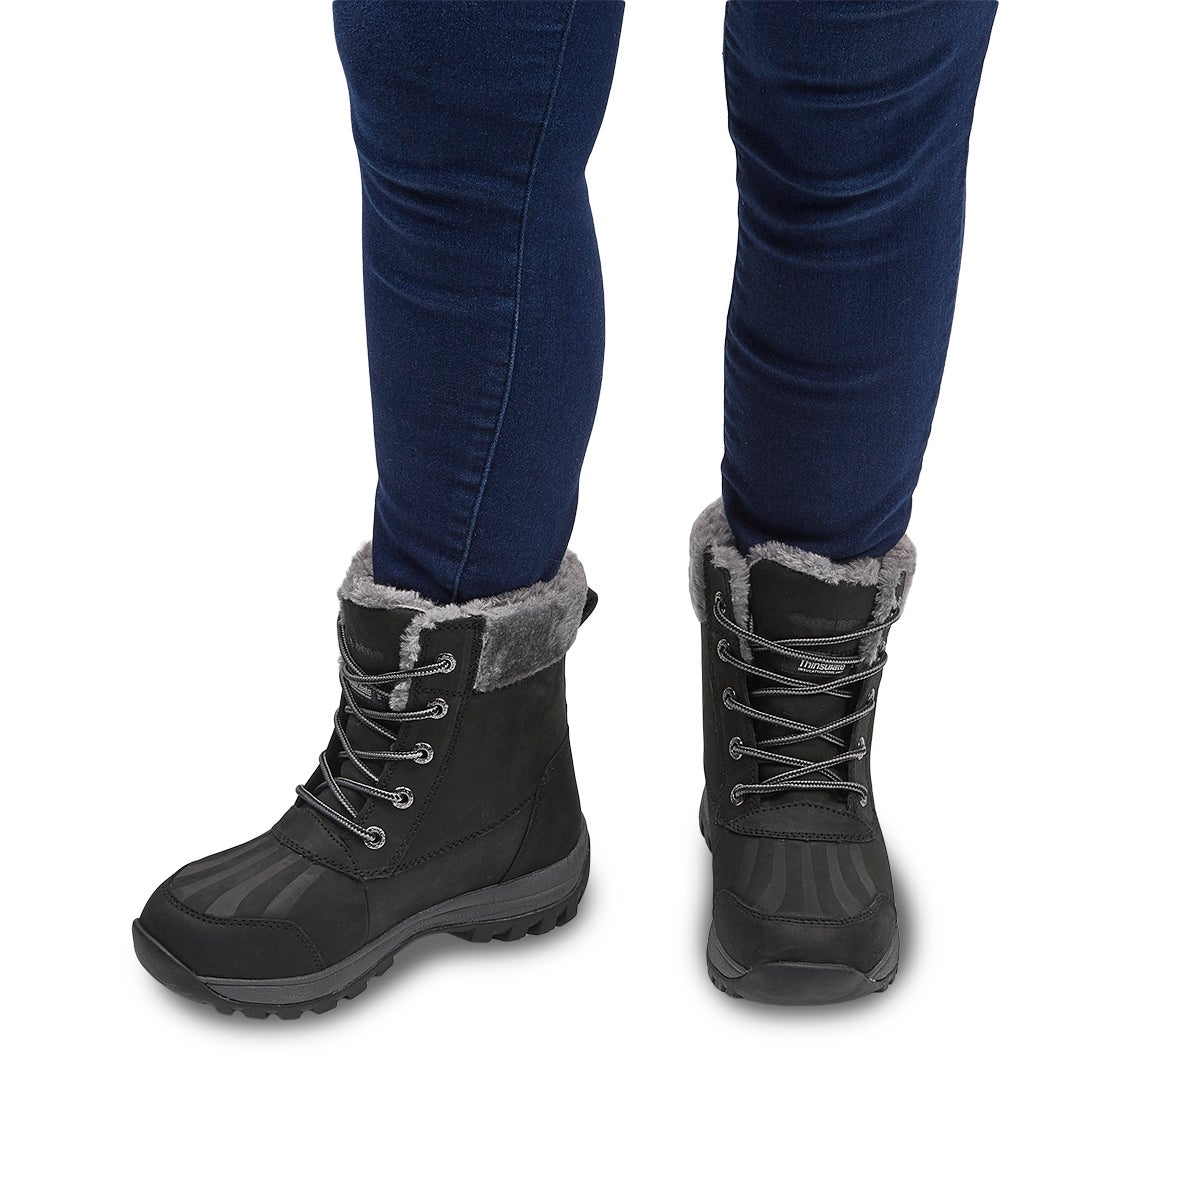 Lds Sophie black wtpf winter boot